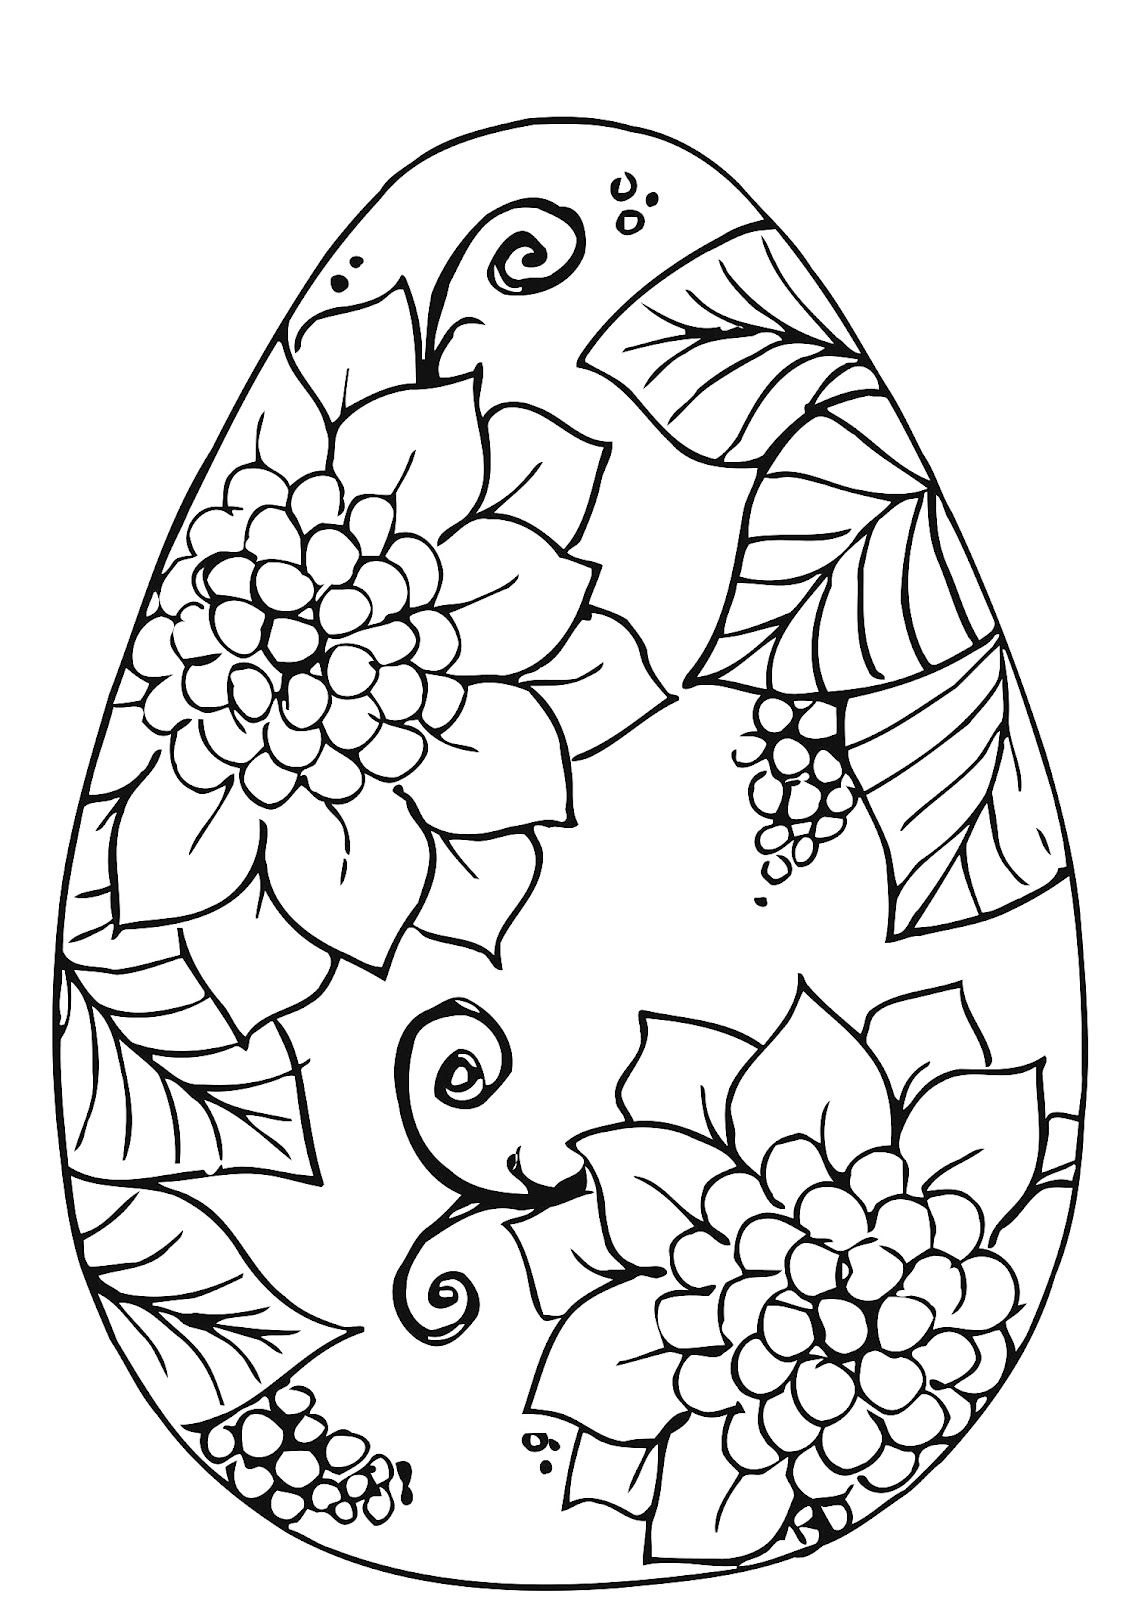 B.D.Designs: Free Coloring page Easter / Kleurplaat Pasen | Patterns ...